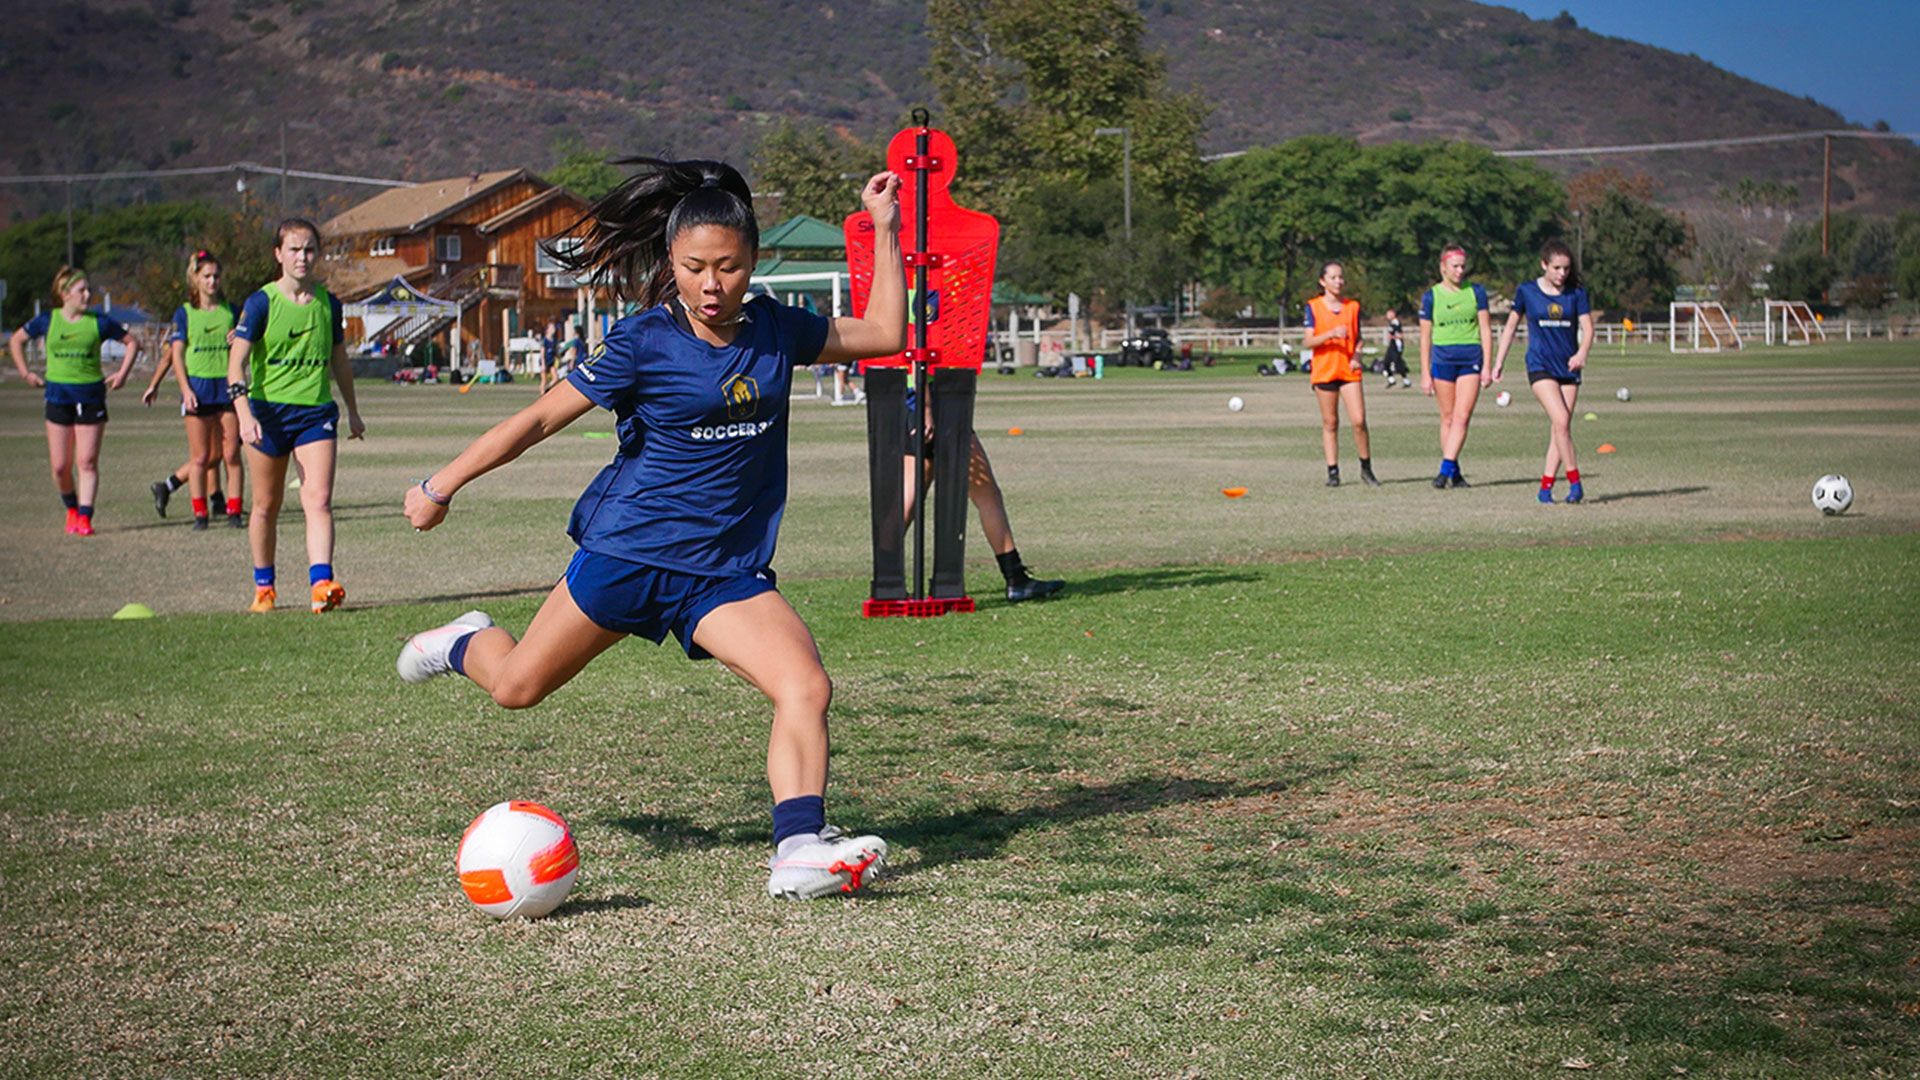 san diego youth soccer tryouts